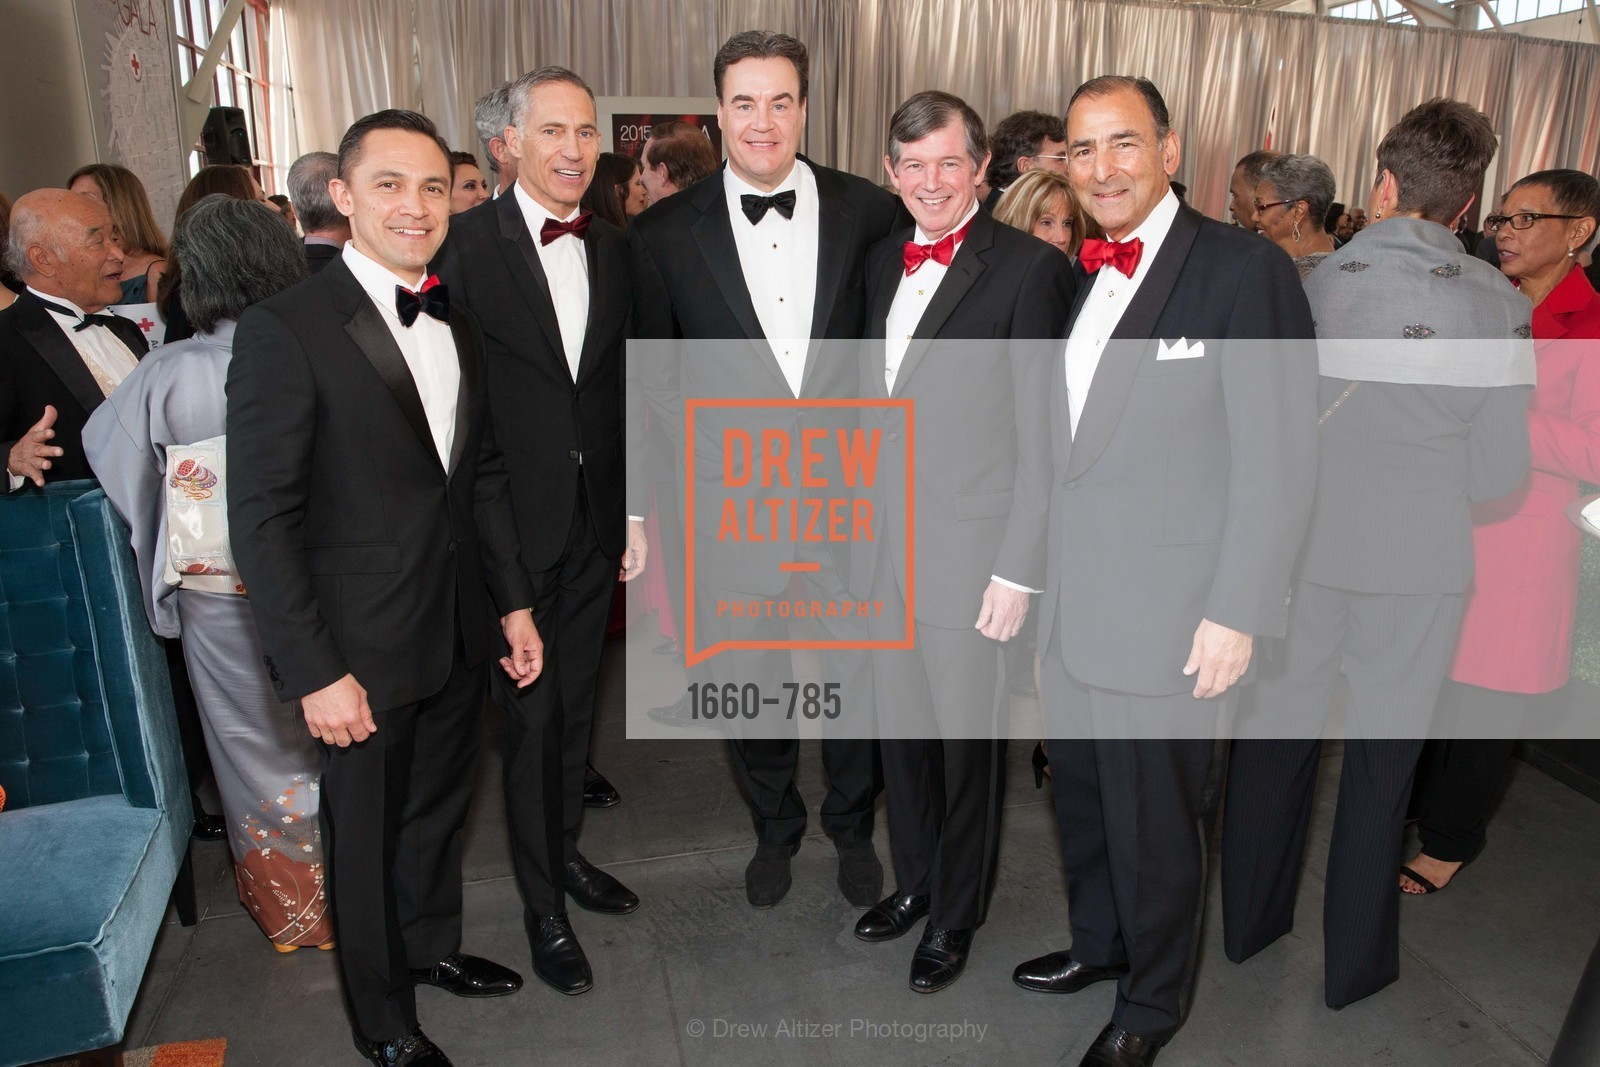 Ezra Garrett, Mark Cloutier, Jim Messemer, Anthony Earley, Alexander Mehran, 2015 RED CROSS Gala, US, April 12th, 2015,Drew Altizer, Drew Altizer Photography, full-service agency, private events, San Francisco photographer, photographer california